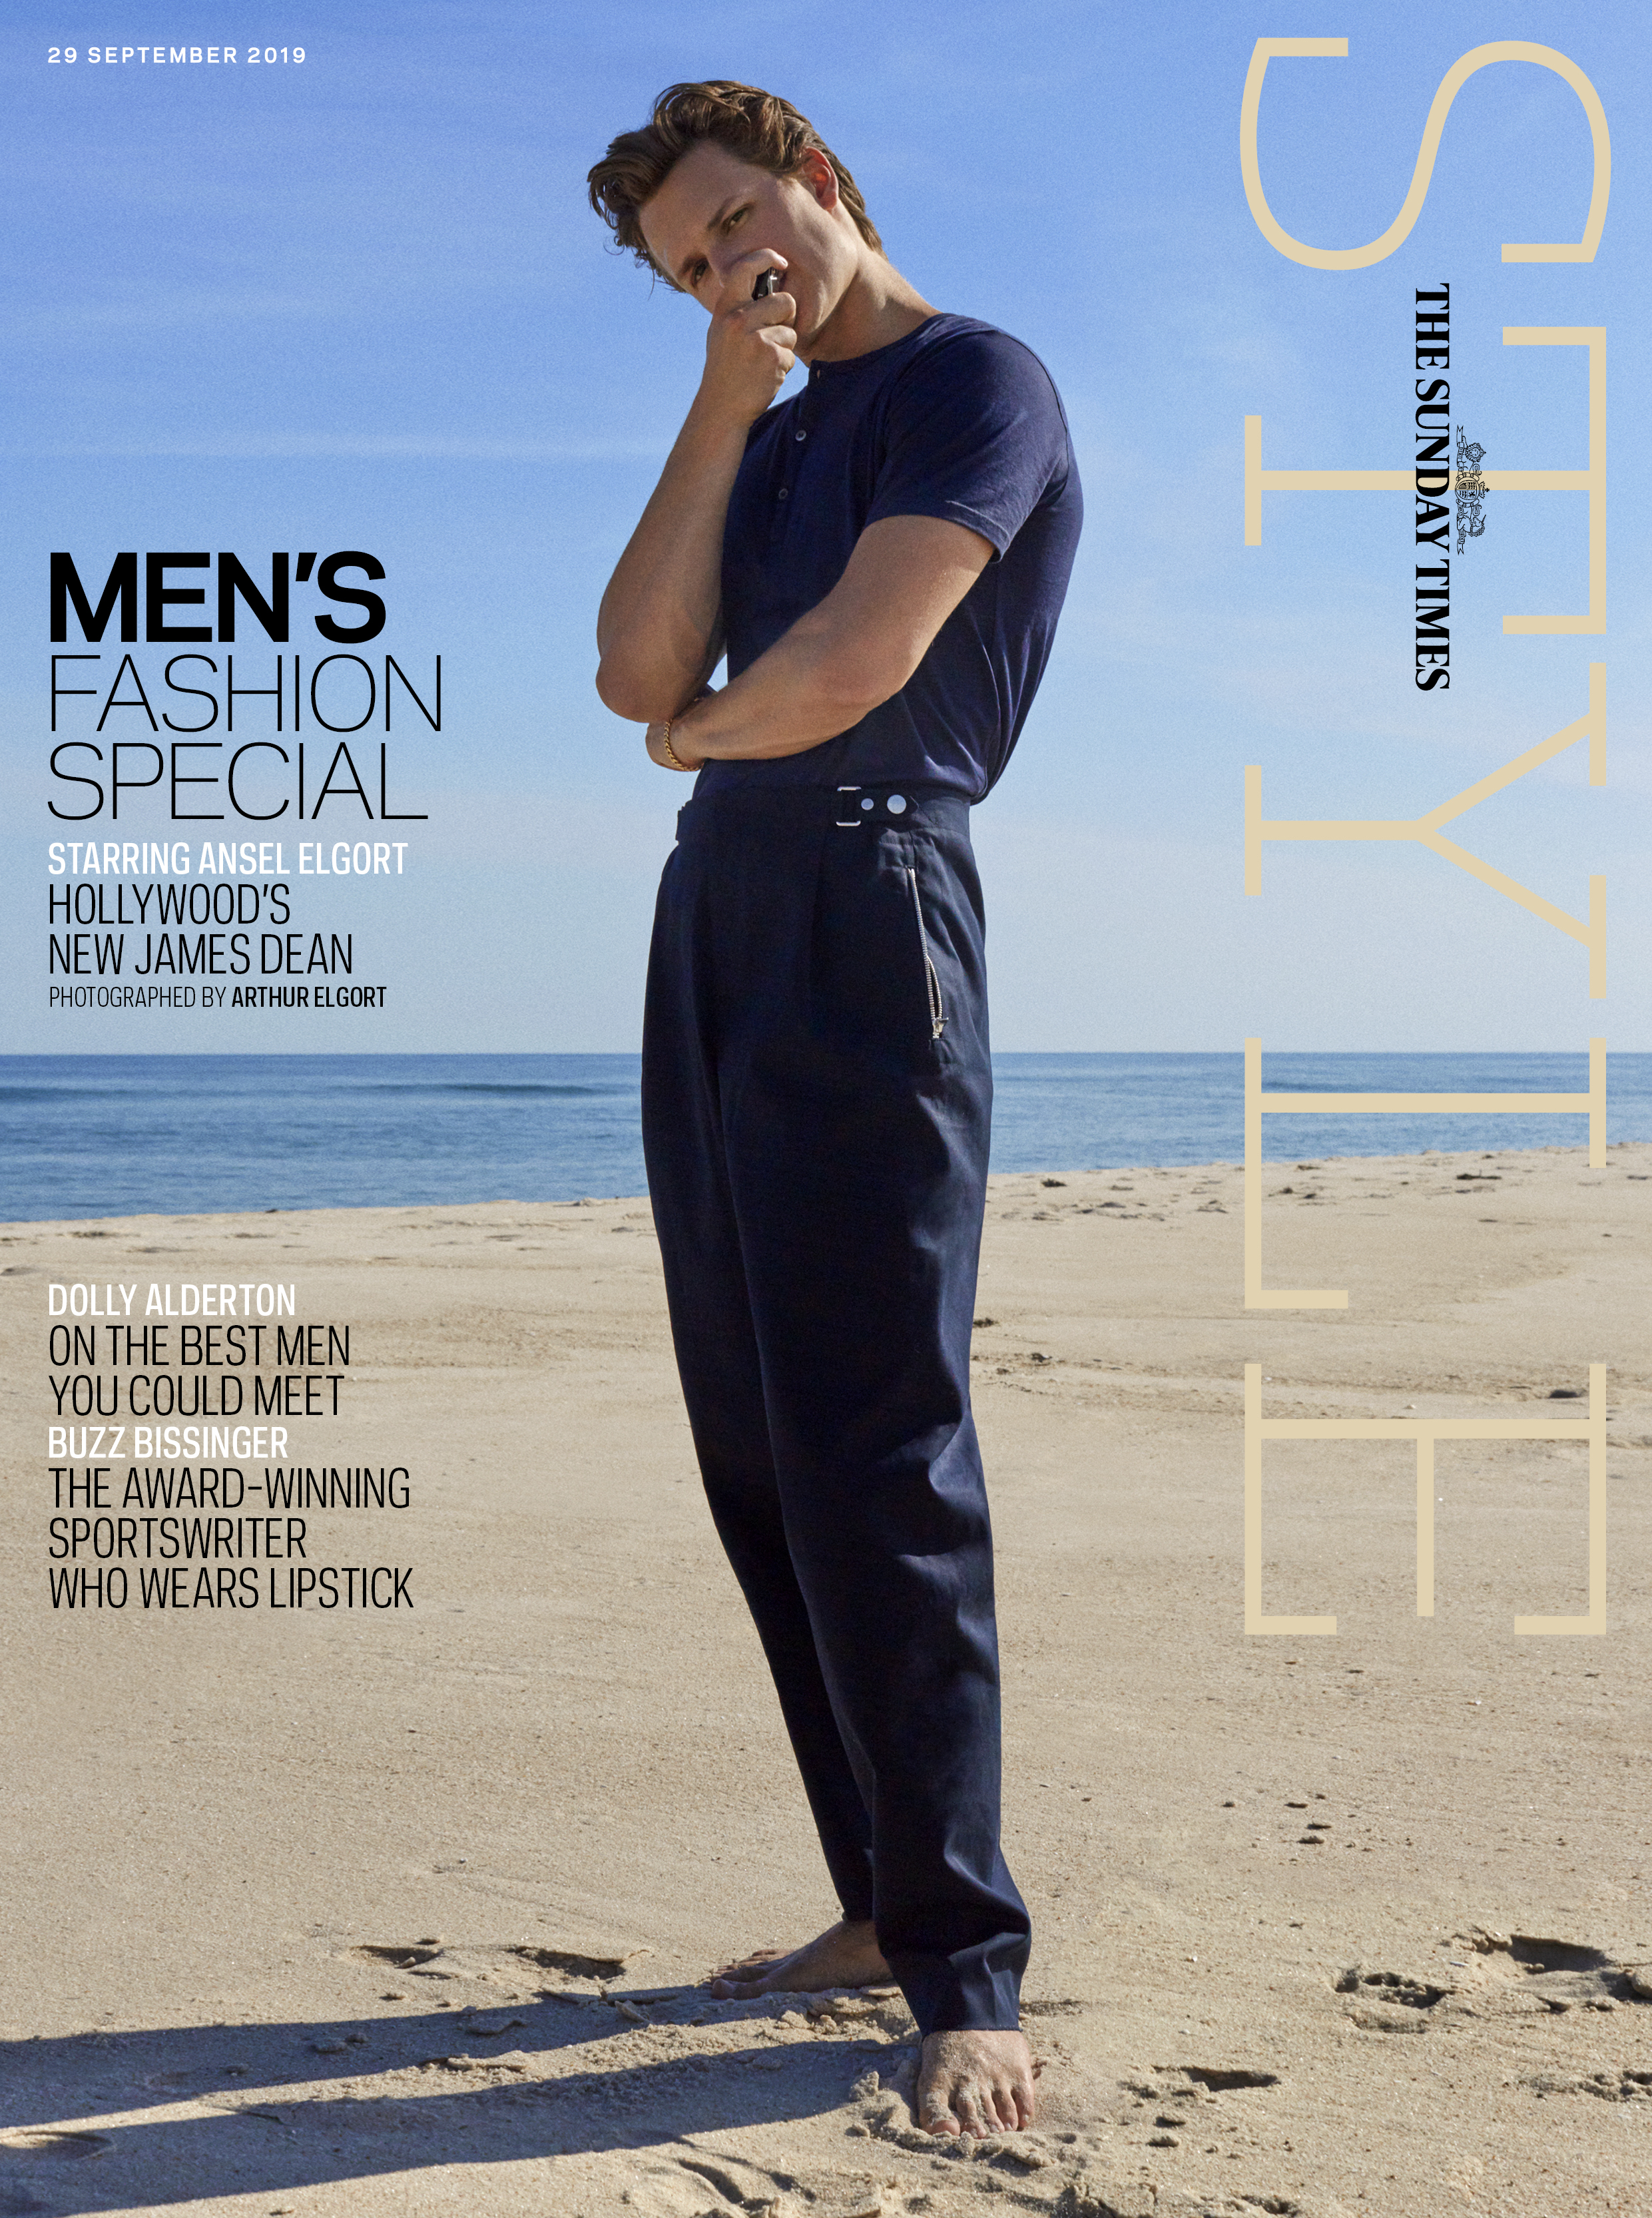 The Sunday Times STYLE 29th September 2019